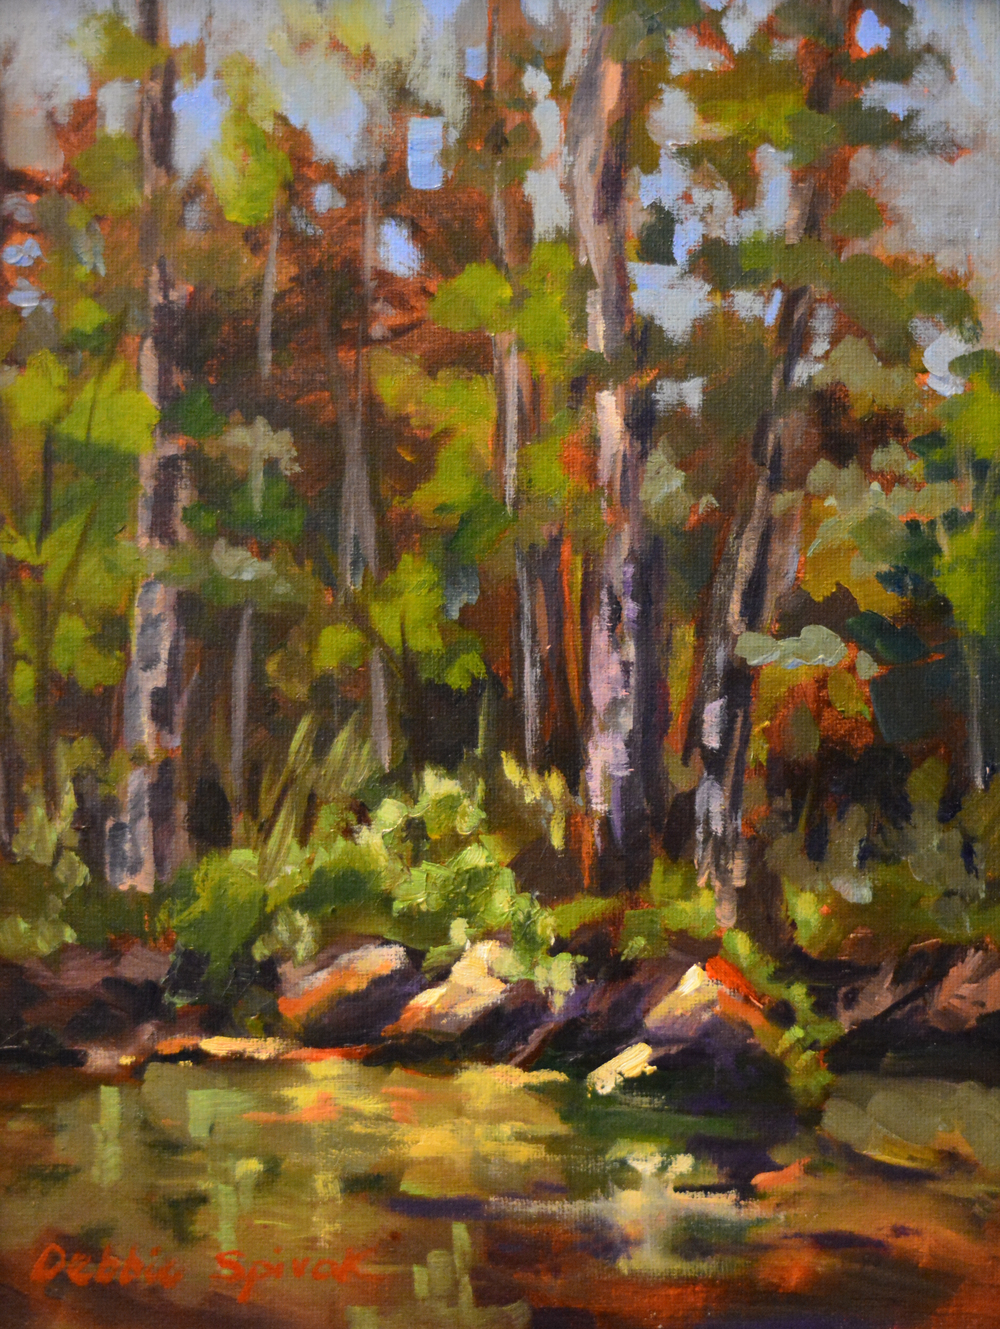 An Evening at Fish Creek - 9x12 oil